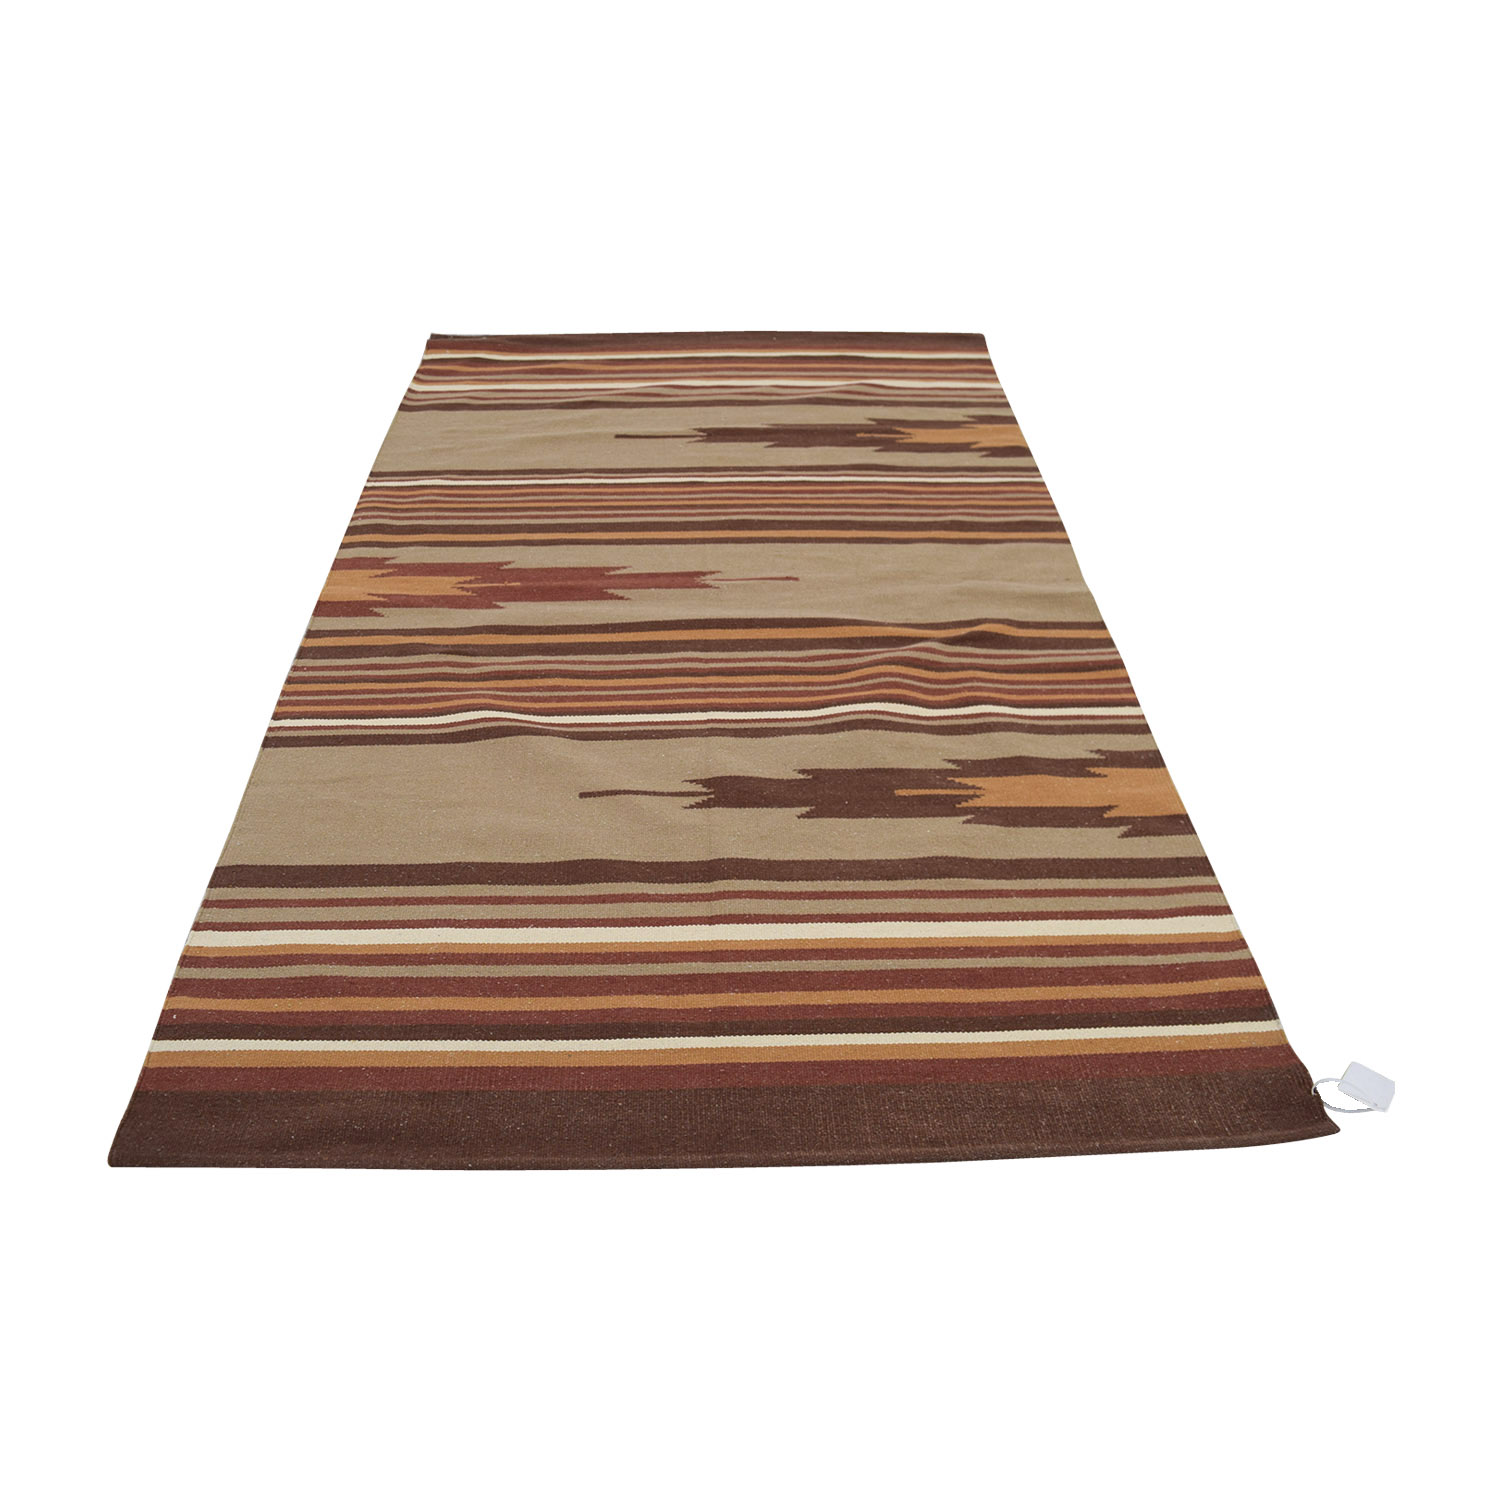 Obeetee Obeetee Red Striped Dhurrie Weave Rug price